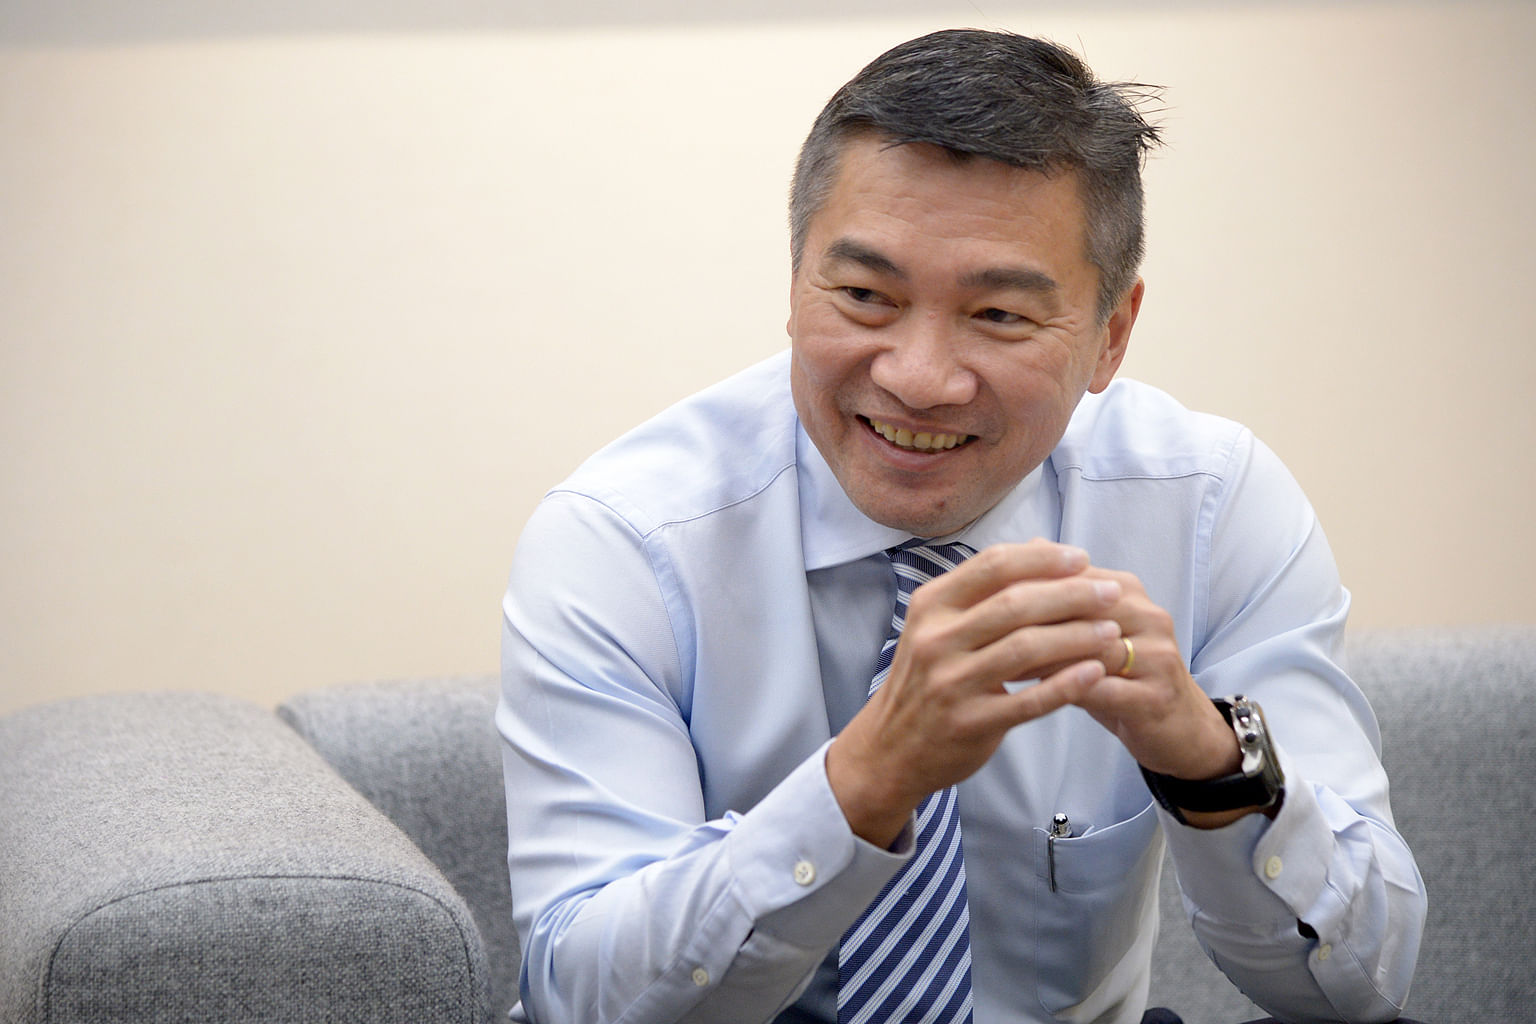 """Singapore Exchange boss Loh Boon Chye says the challenges that come with his job have arrived """"fast and furious"""", but while they are tough, he feels they are not insurmountable."""